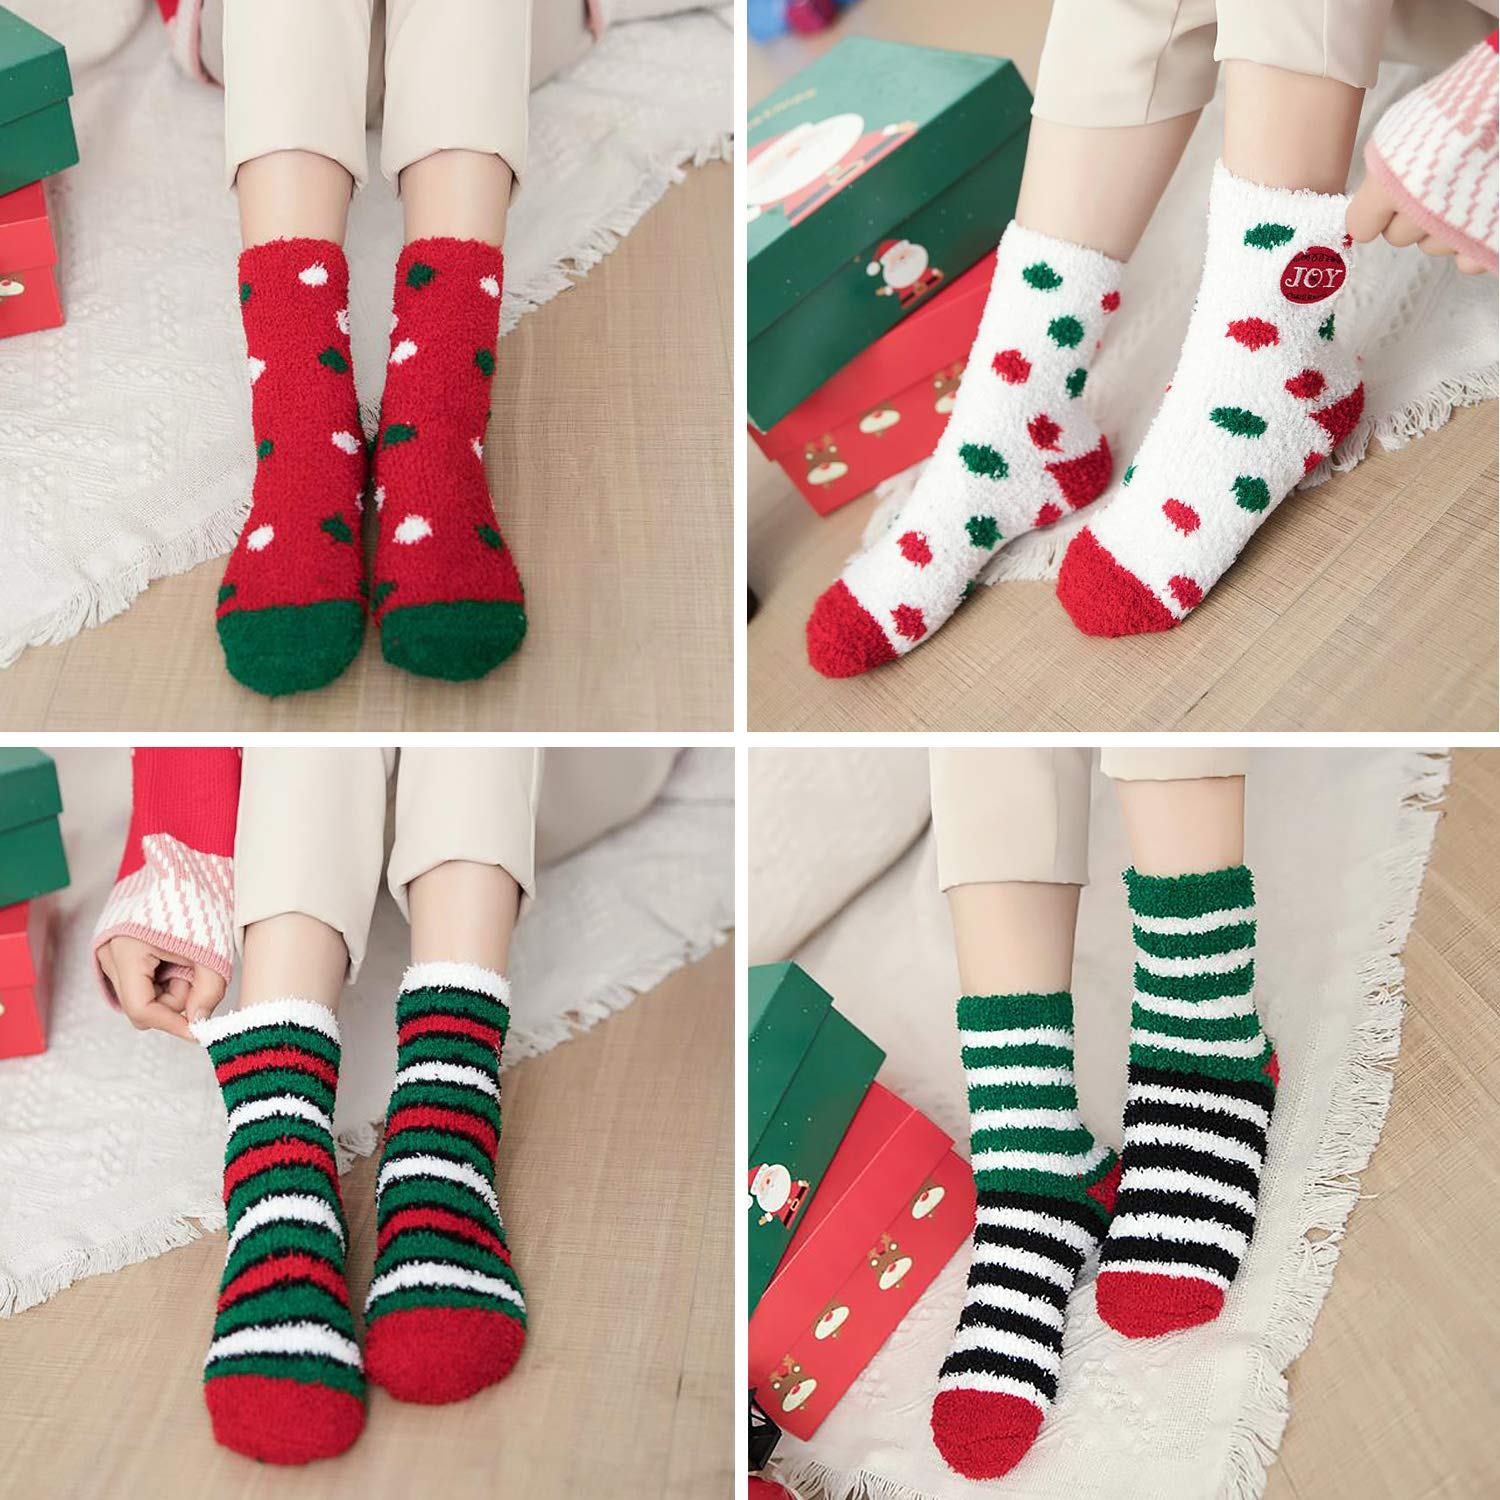 Christmas Fuzzy Socks,Kapmore 6 Pairs Cute Coral Fleece Warm Cozy Socks Holiday Slipper Socks XMAS Fluffy Crew Socks for Women Girls